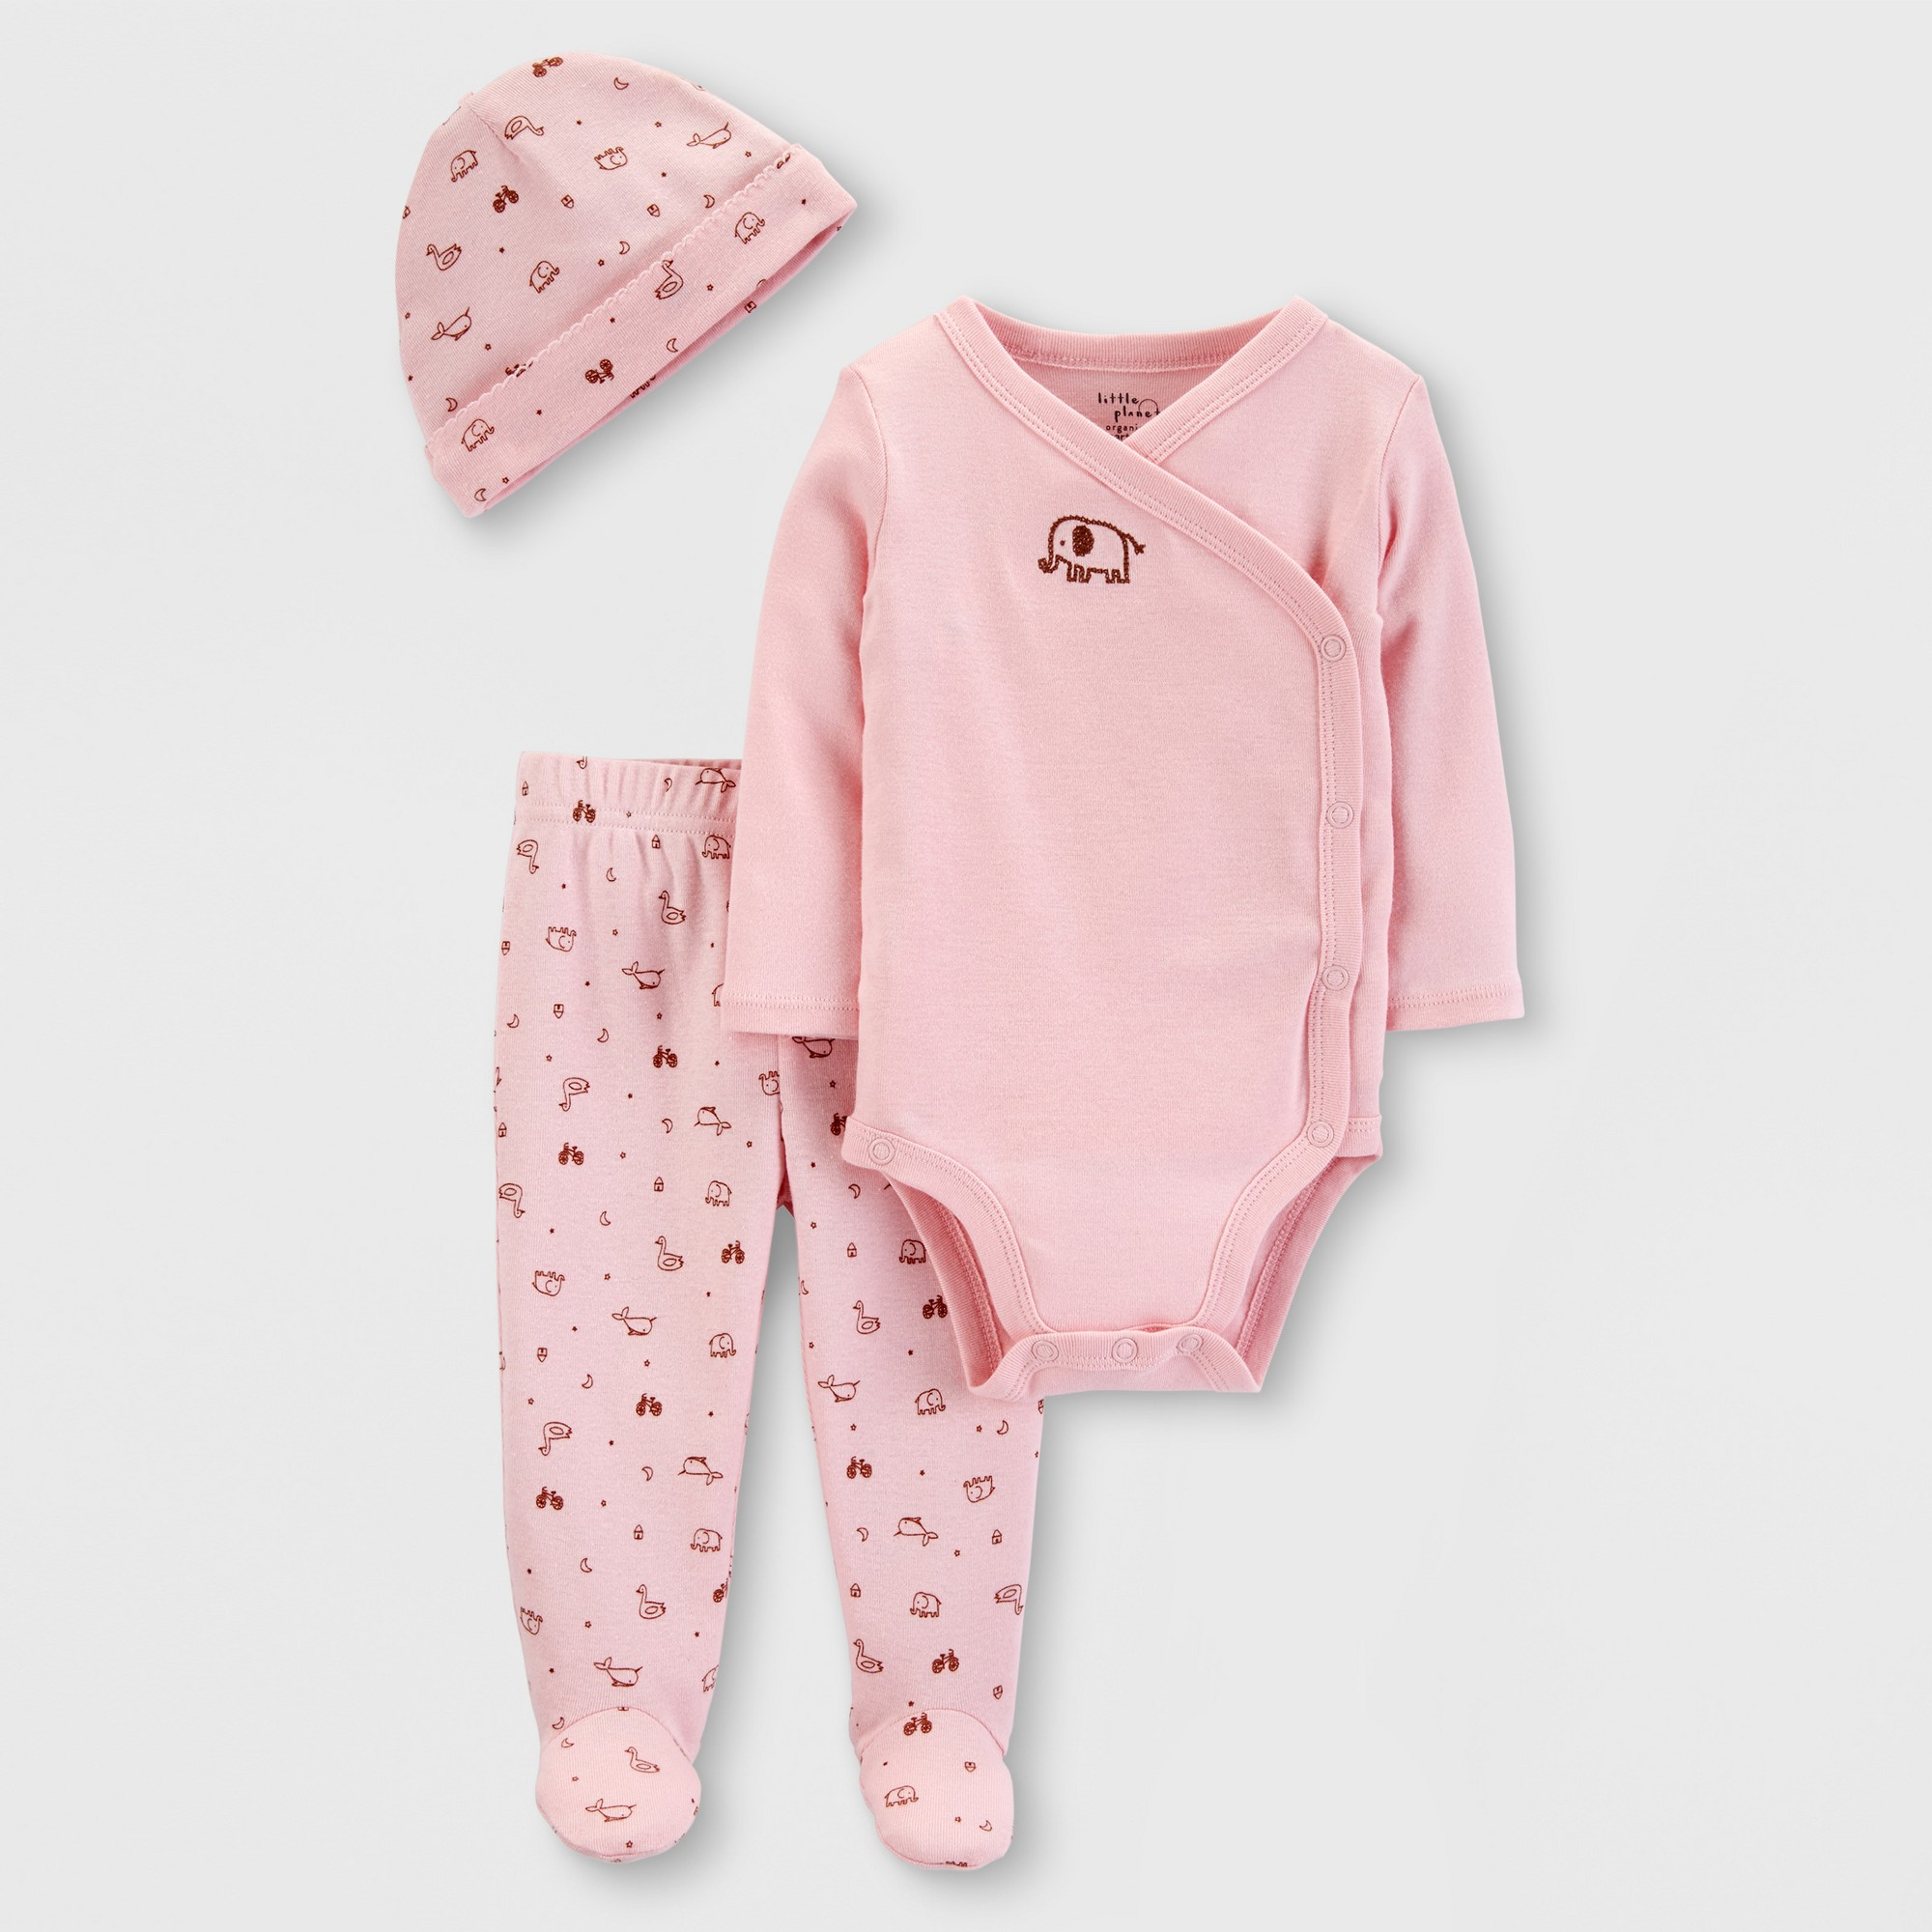 Little Planet Organic by carter's Baby Girls' Elephant Print Top and Bottom Set - Pink 9M